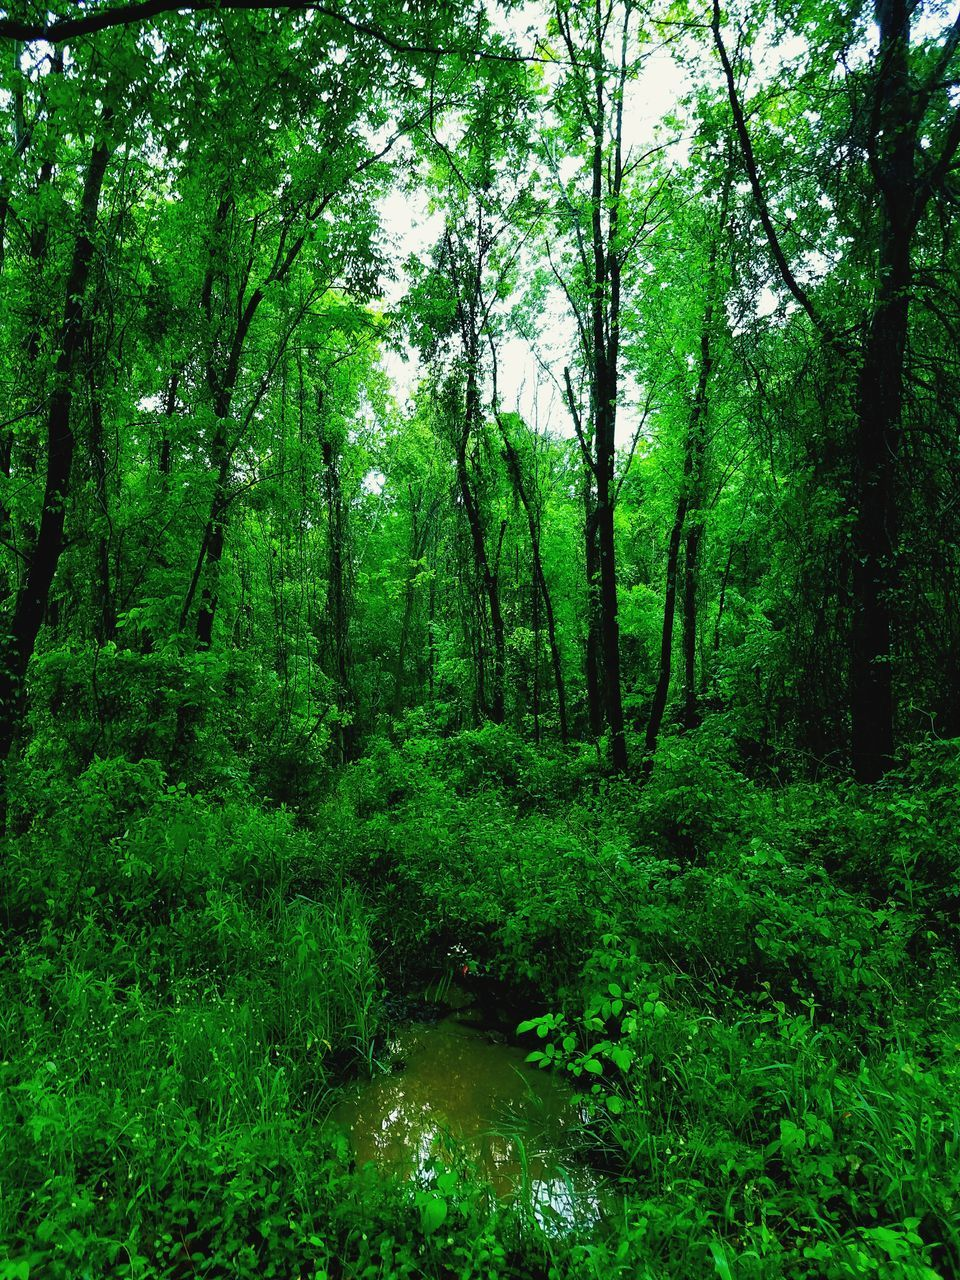 forest, nature, green, tree, tranquility, beauty in nature, no people, green color, growth, day, scenics, outdoors